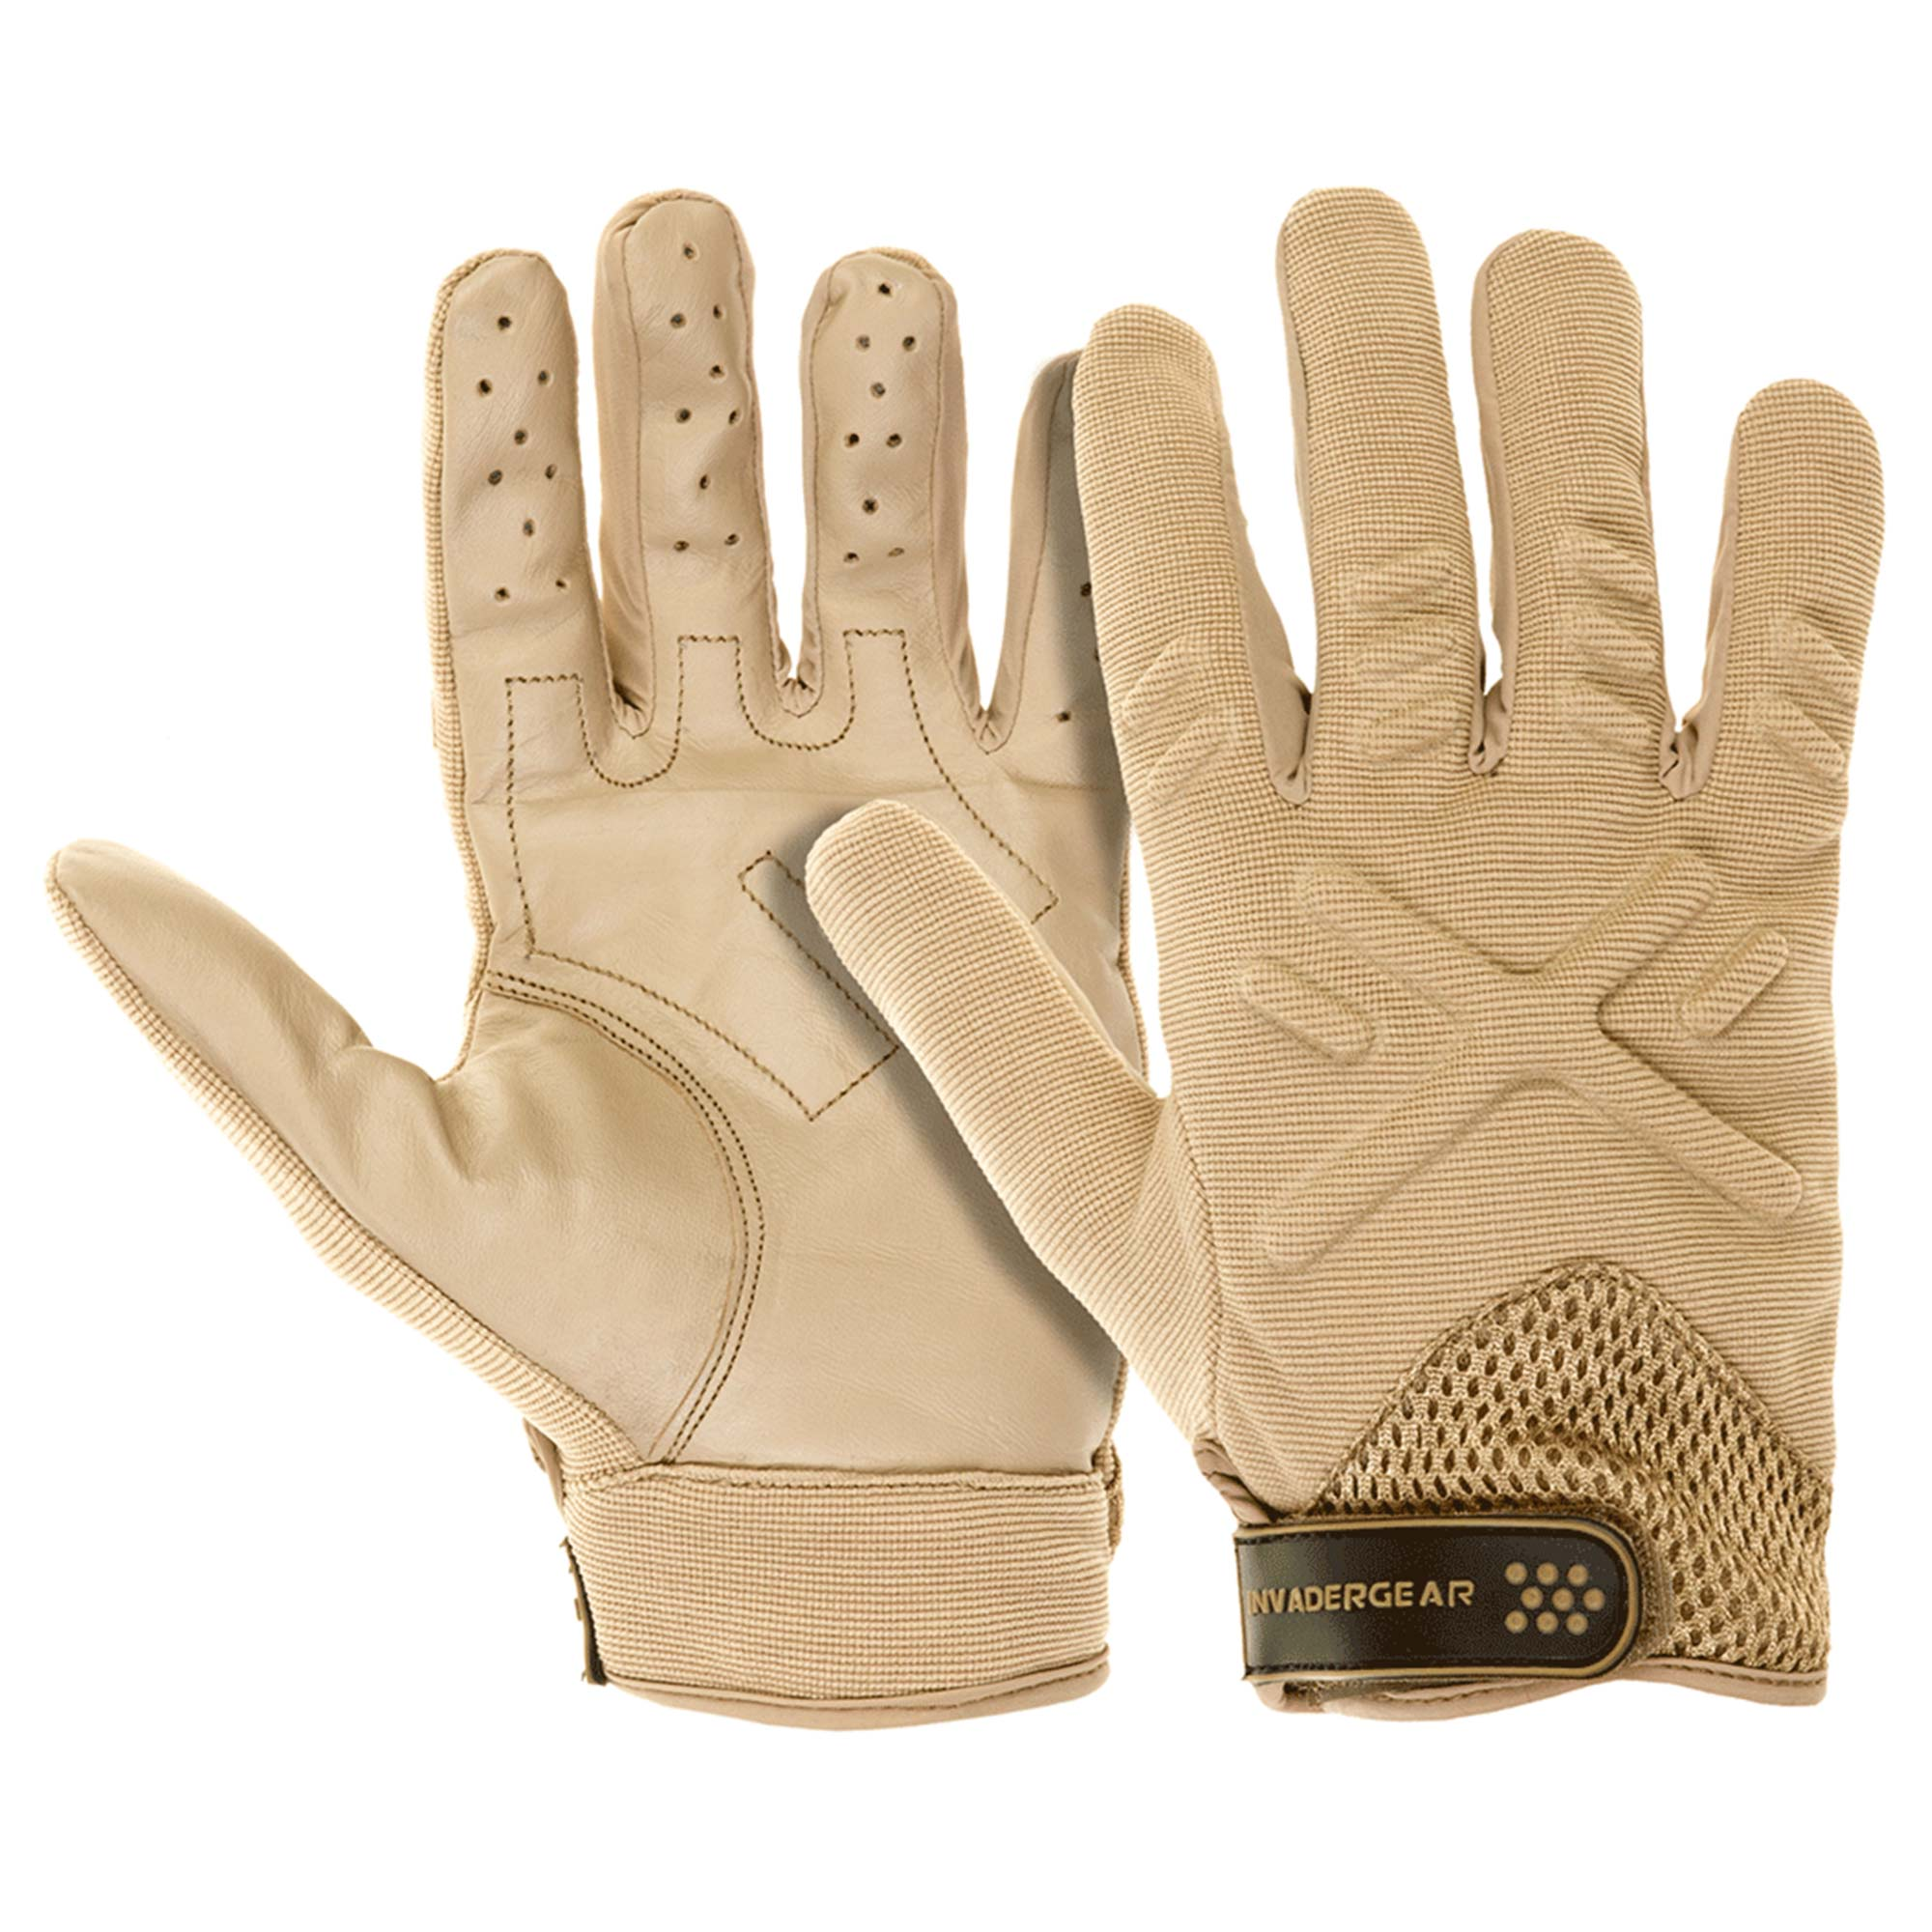 Invader Gear Handschuhe Shooting coyote